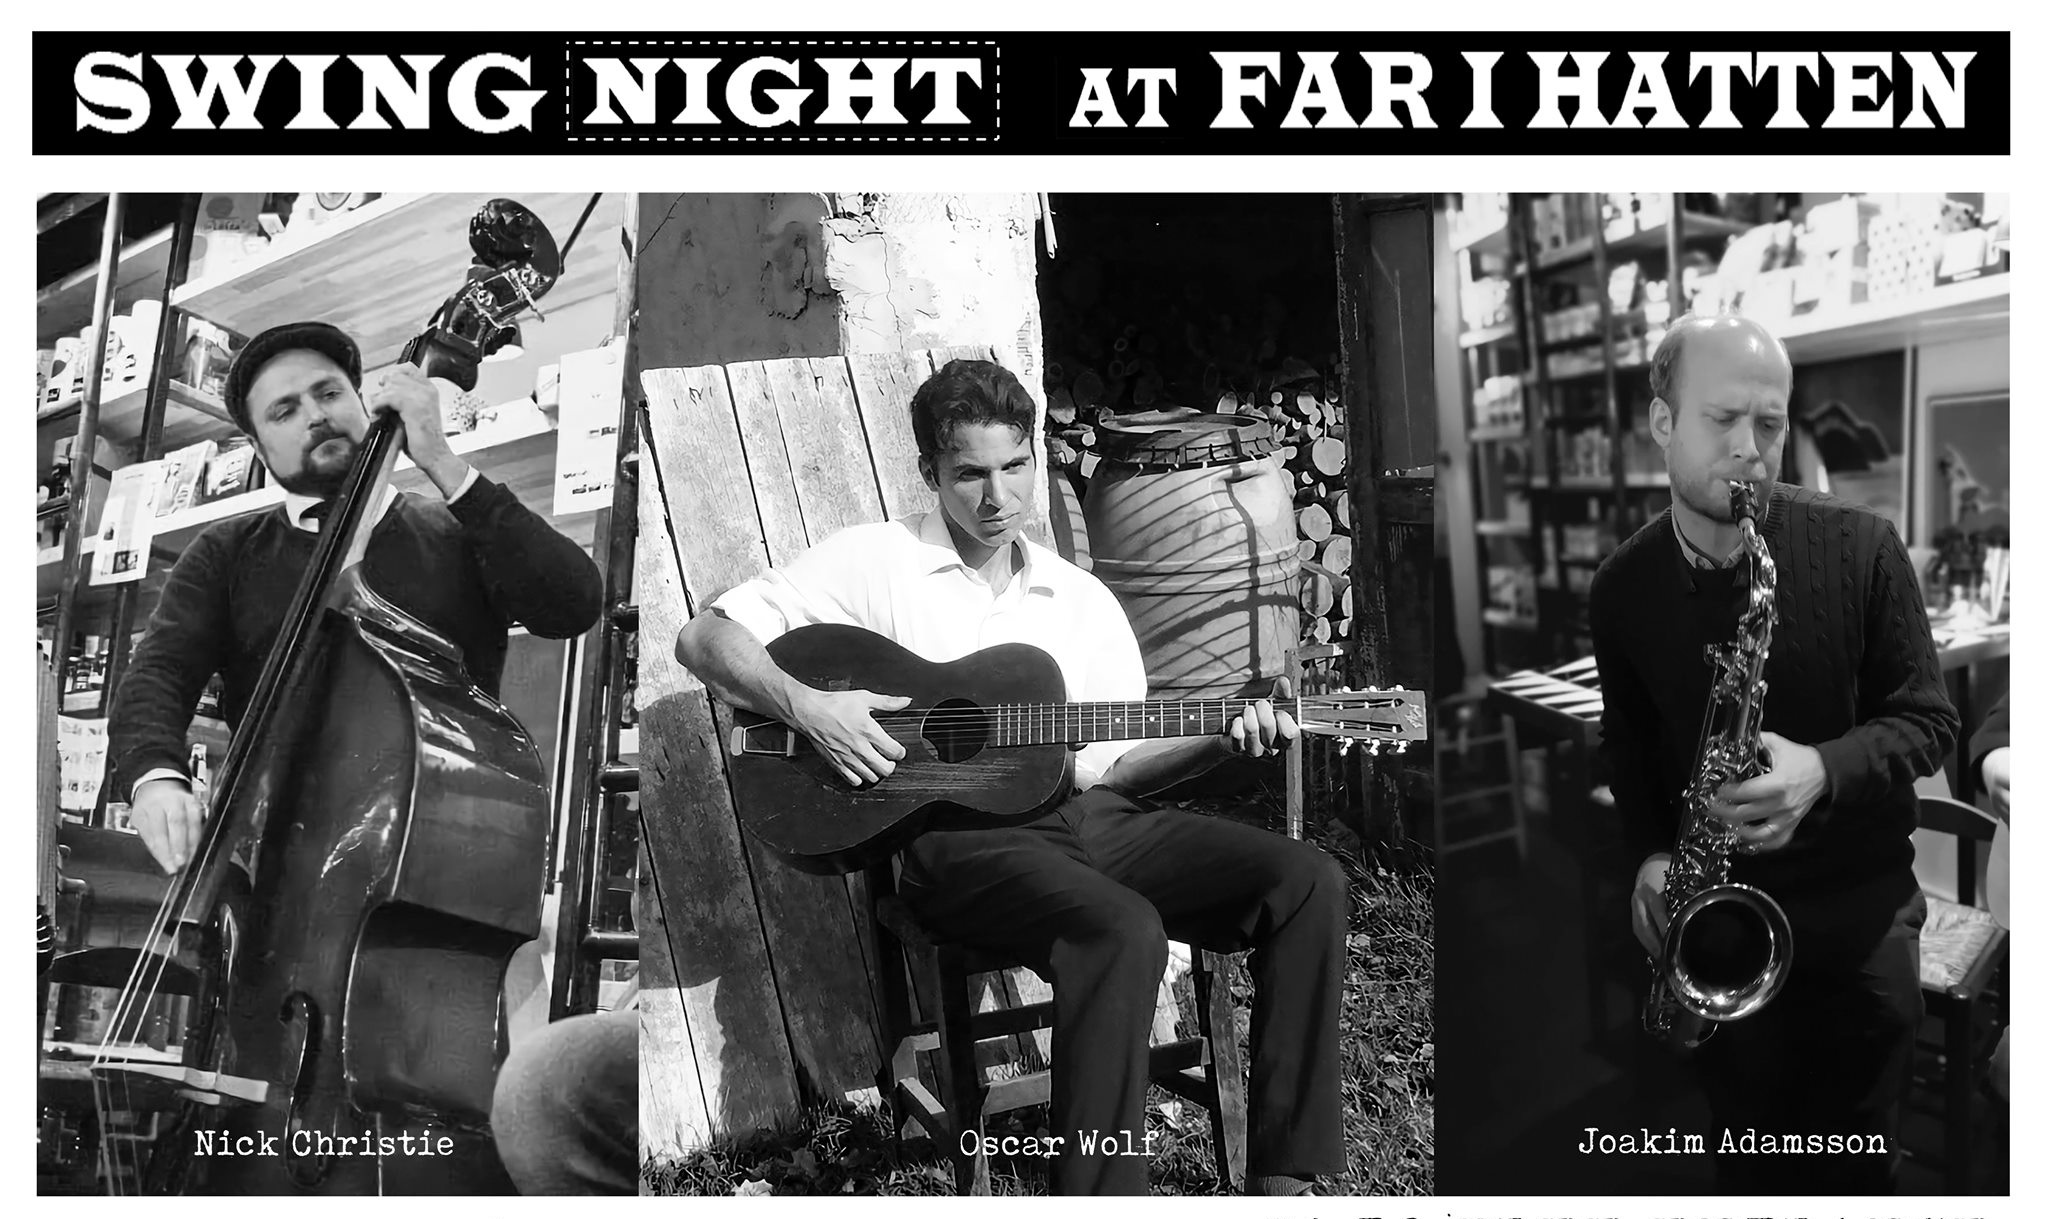 Swing+Night+at+Far+i+Hatten+%28Oscar+Wolf%2CNick+Christie%2CJoakim+Ad%29.jpg